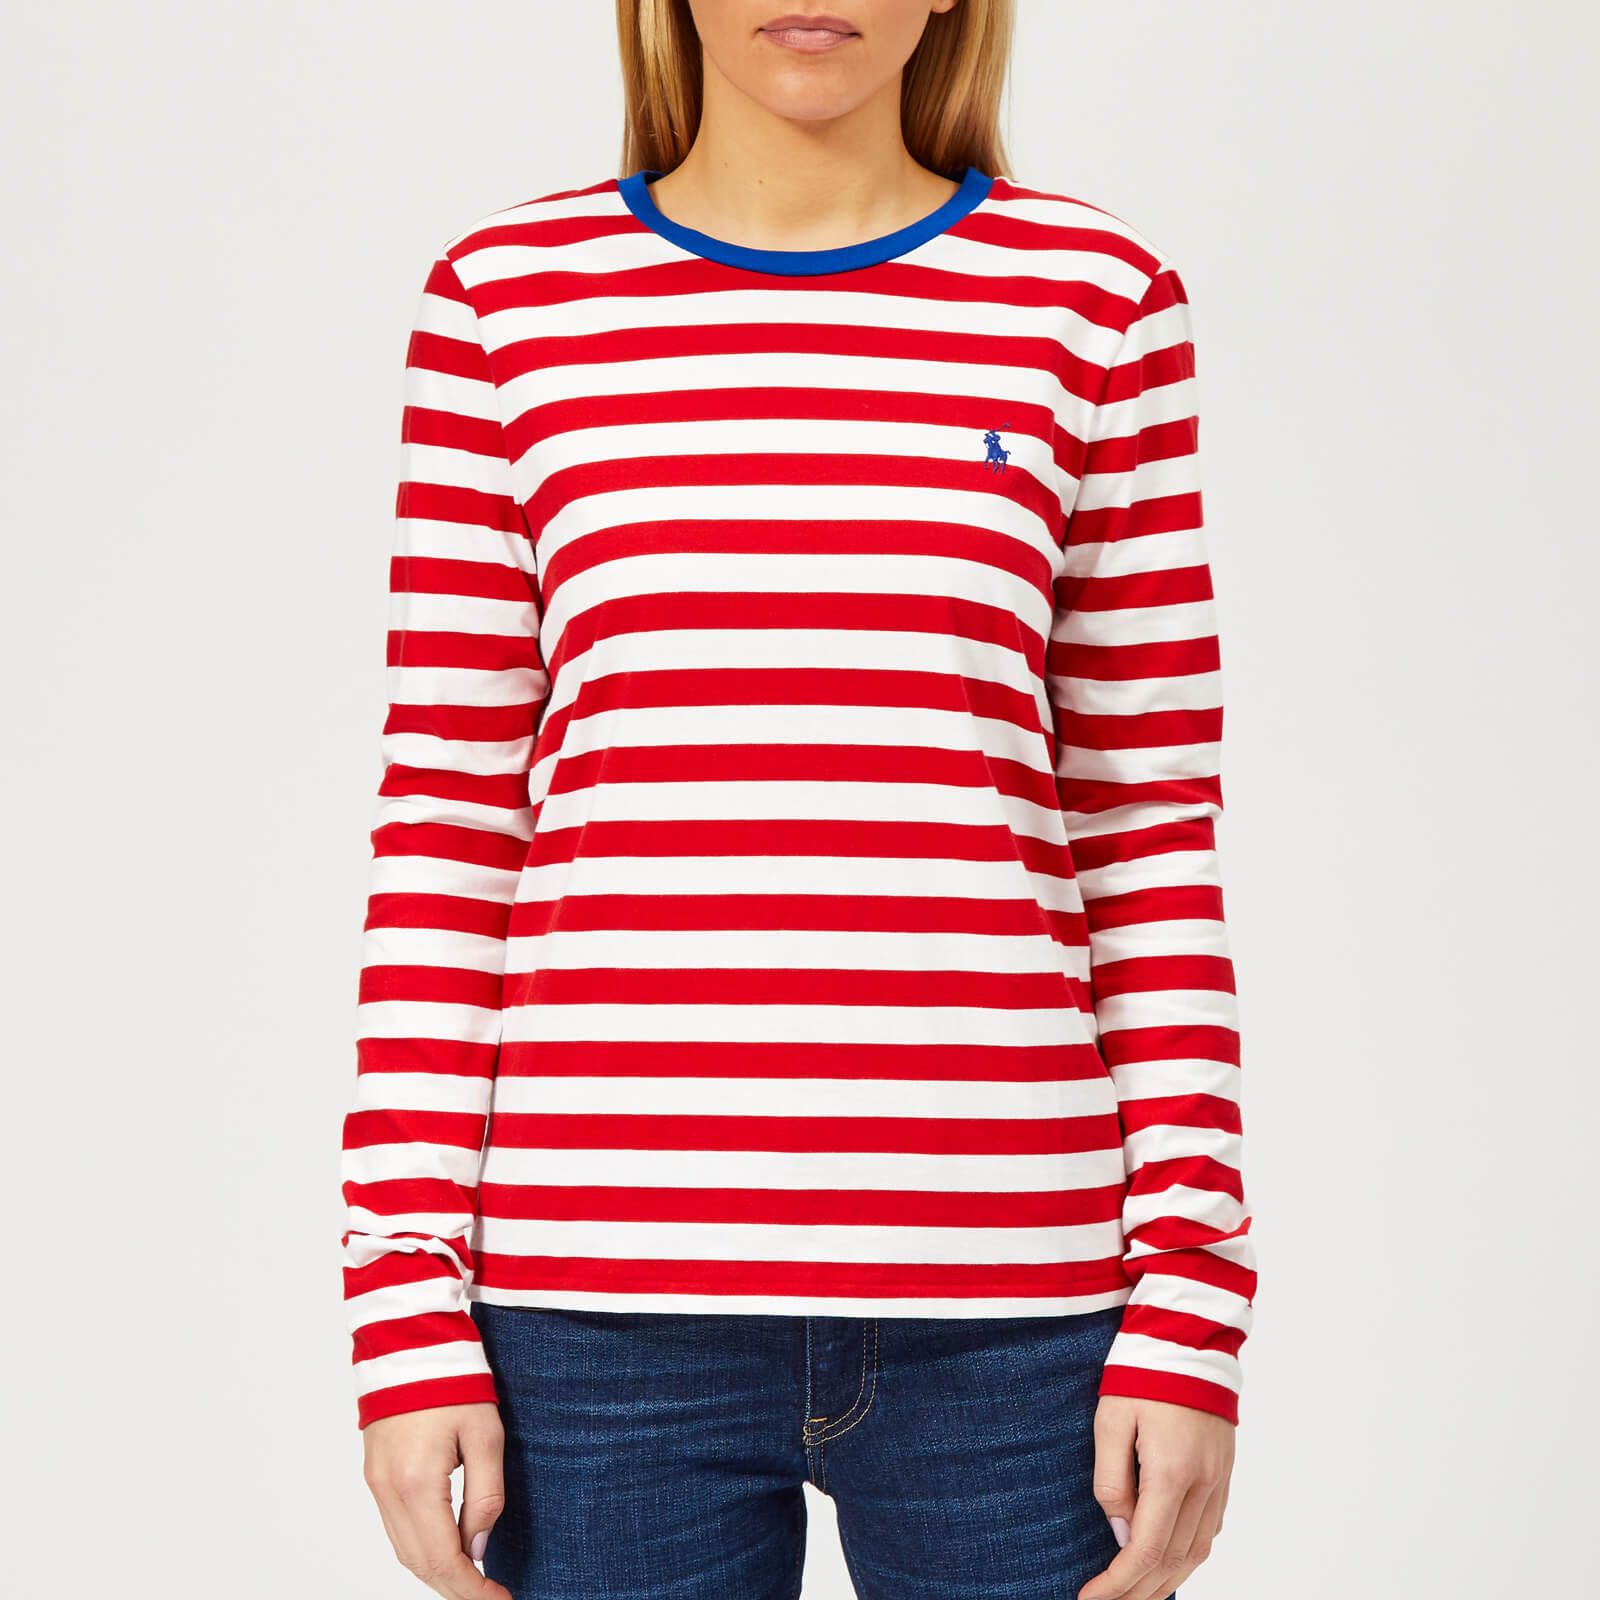 190210f55e Polo Ralph Lauren Women's PP Long Sleeve Stripe Crew Neck T-Shirt - Red/ White - Free UK Delivery over £50